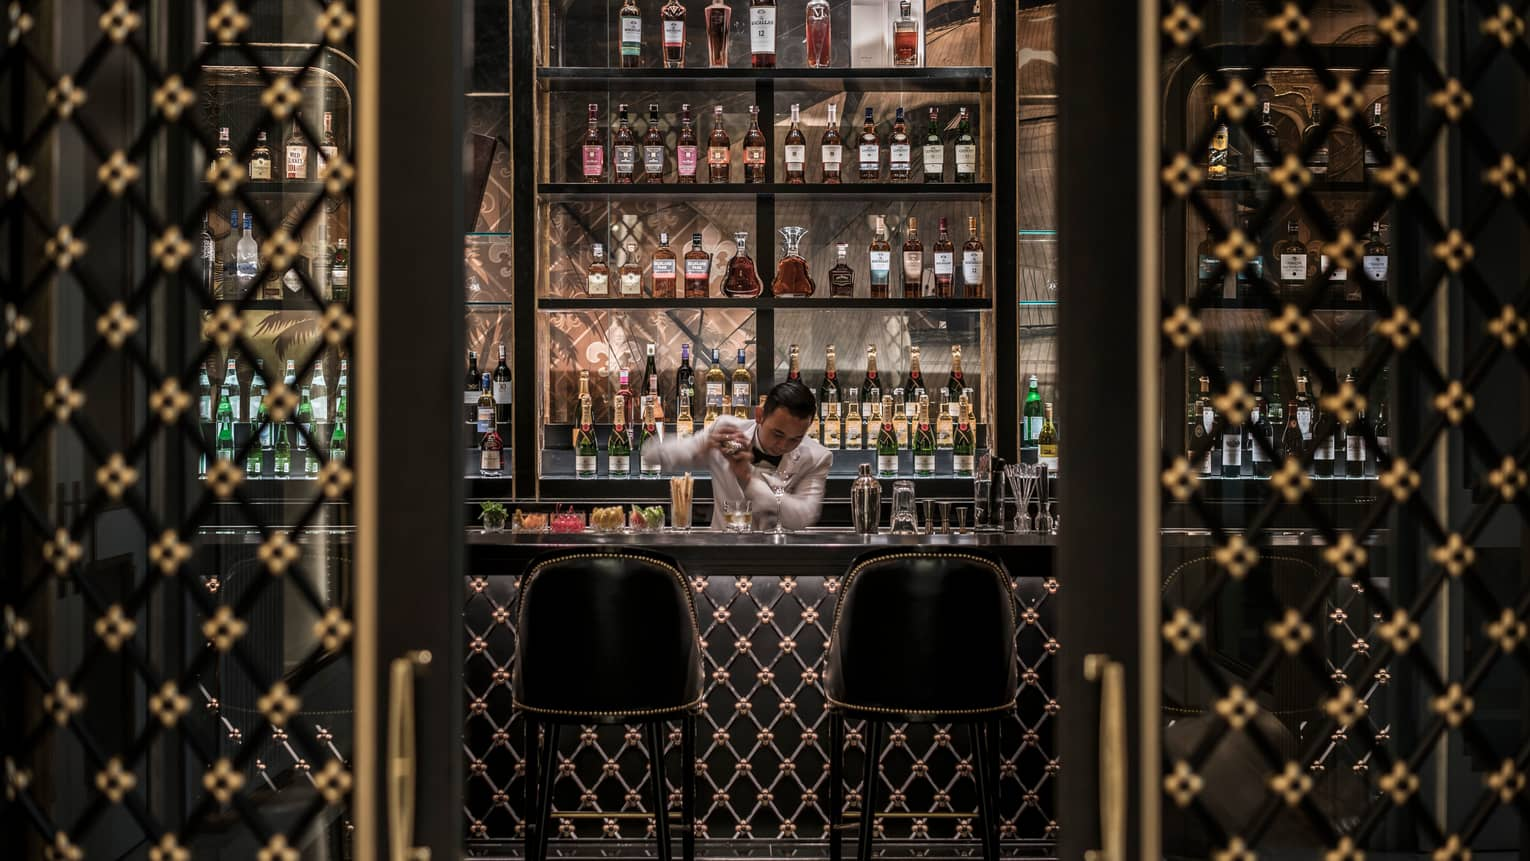 Bartender shakes drink behind dark Nautilus Bar with black-and-gold Art Deco-style design